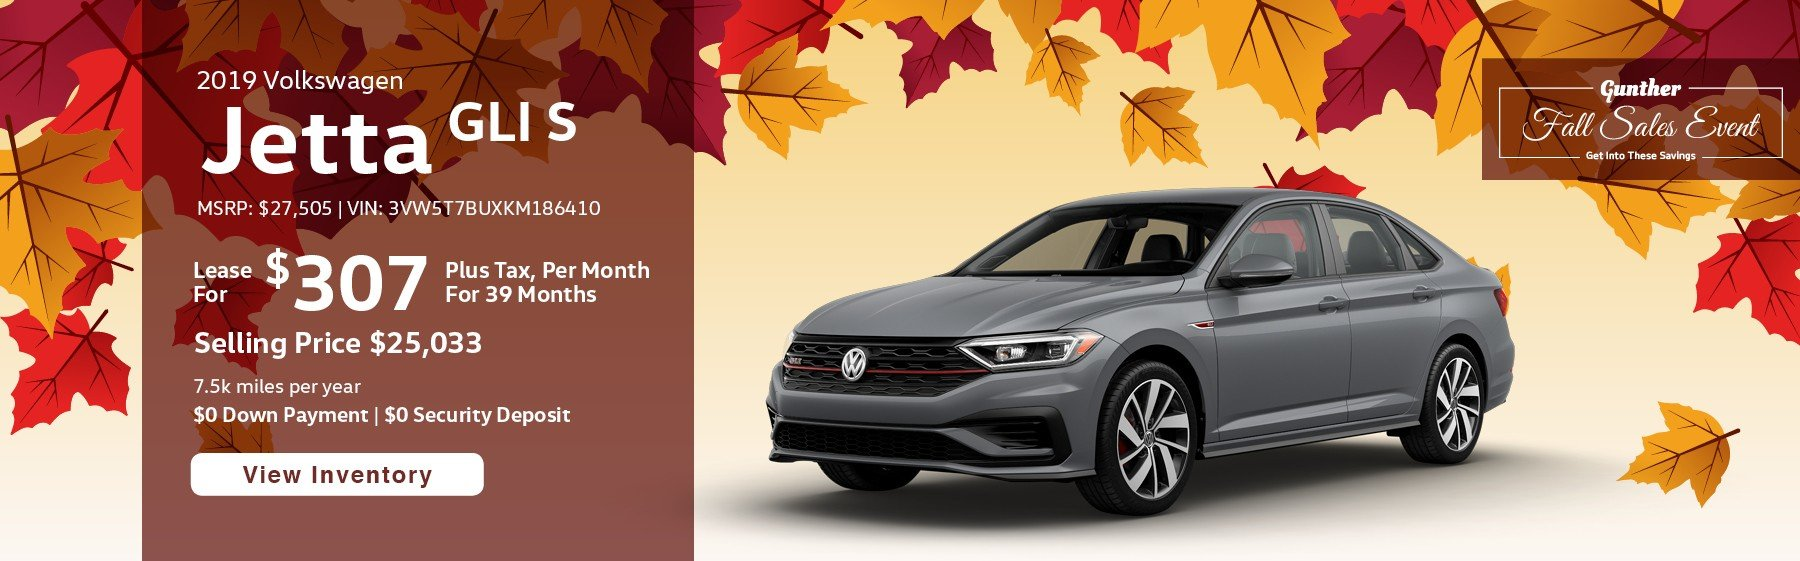 Lease the 2019 Jetta GLI S for $307 per month, plus tax for 39 months.